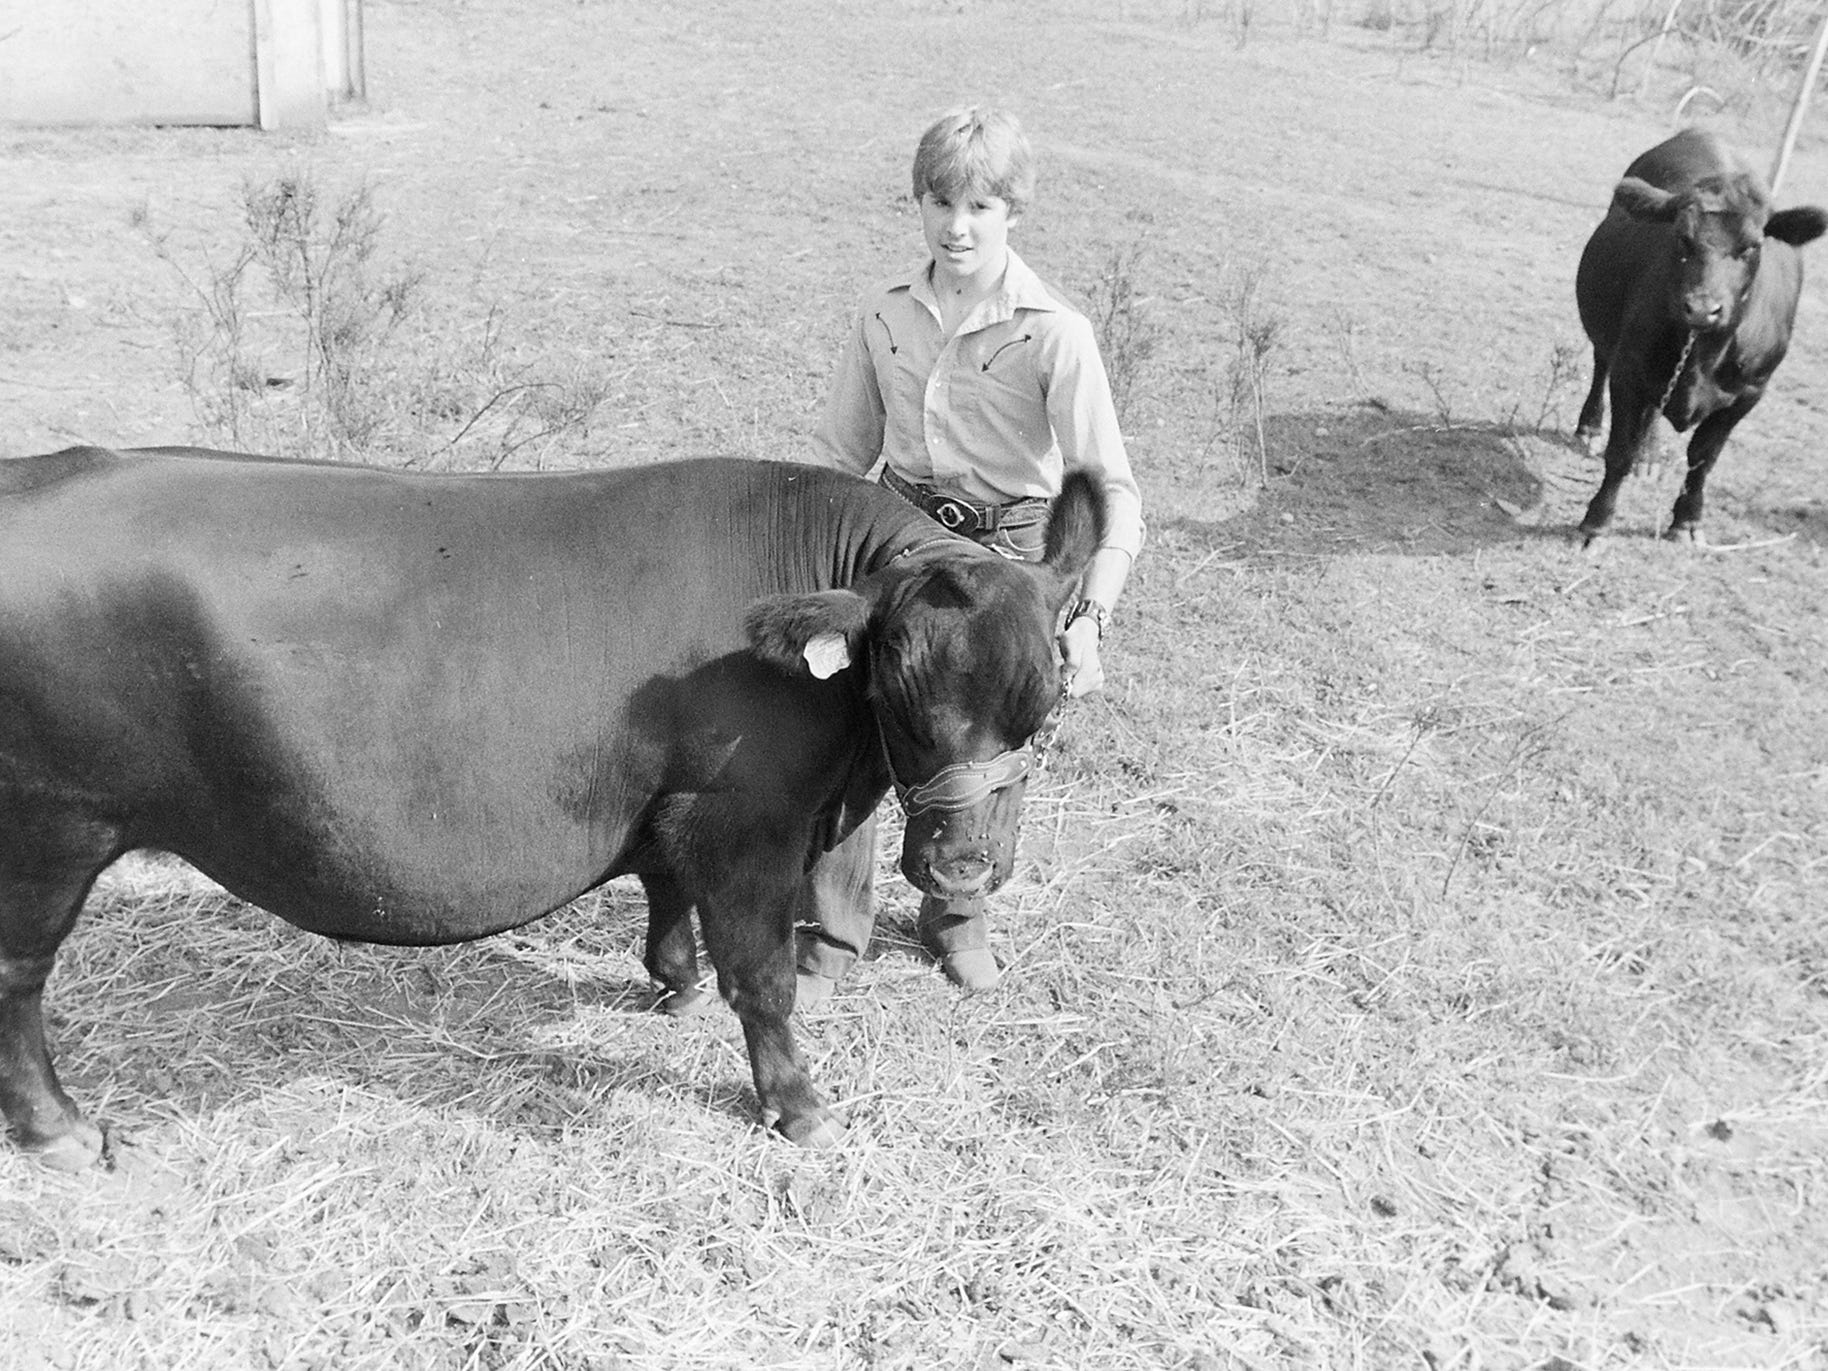 08/20/82Kid and His Cow